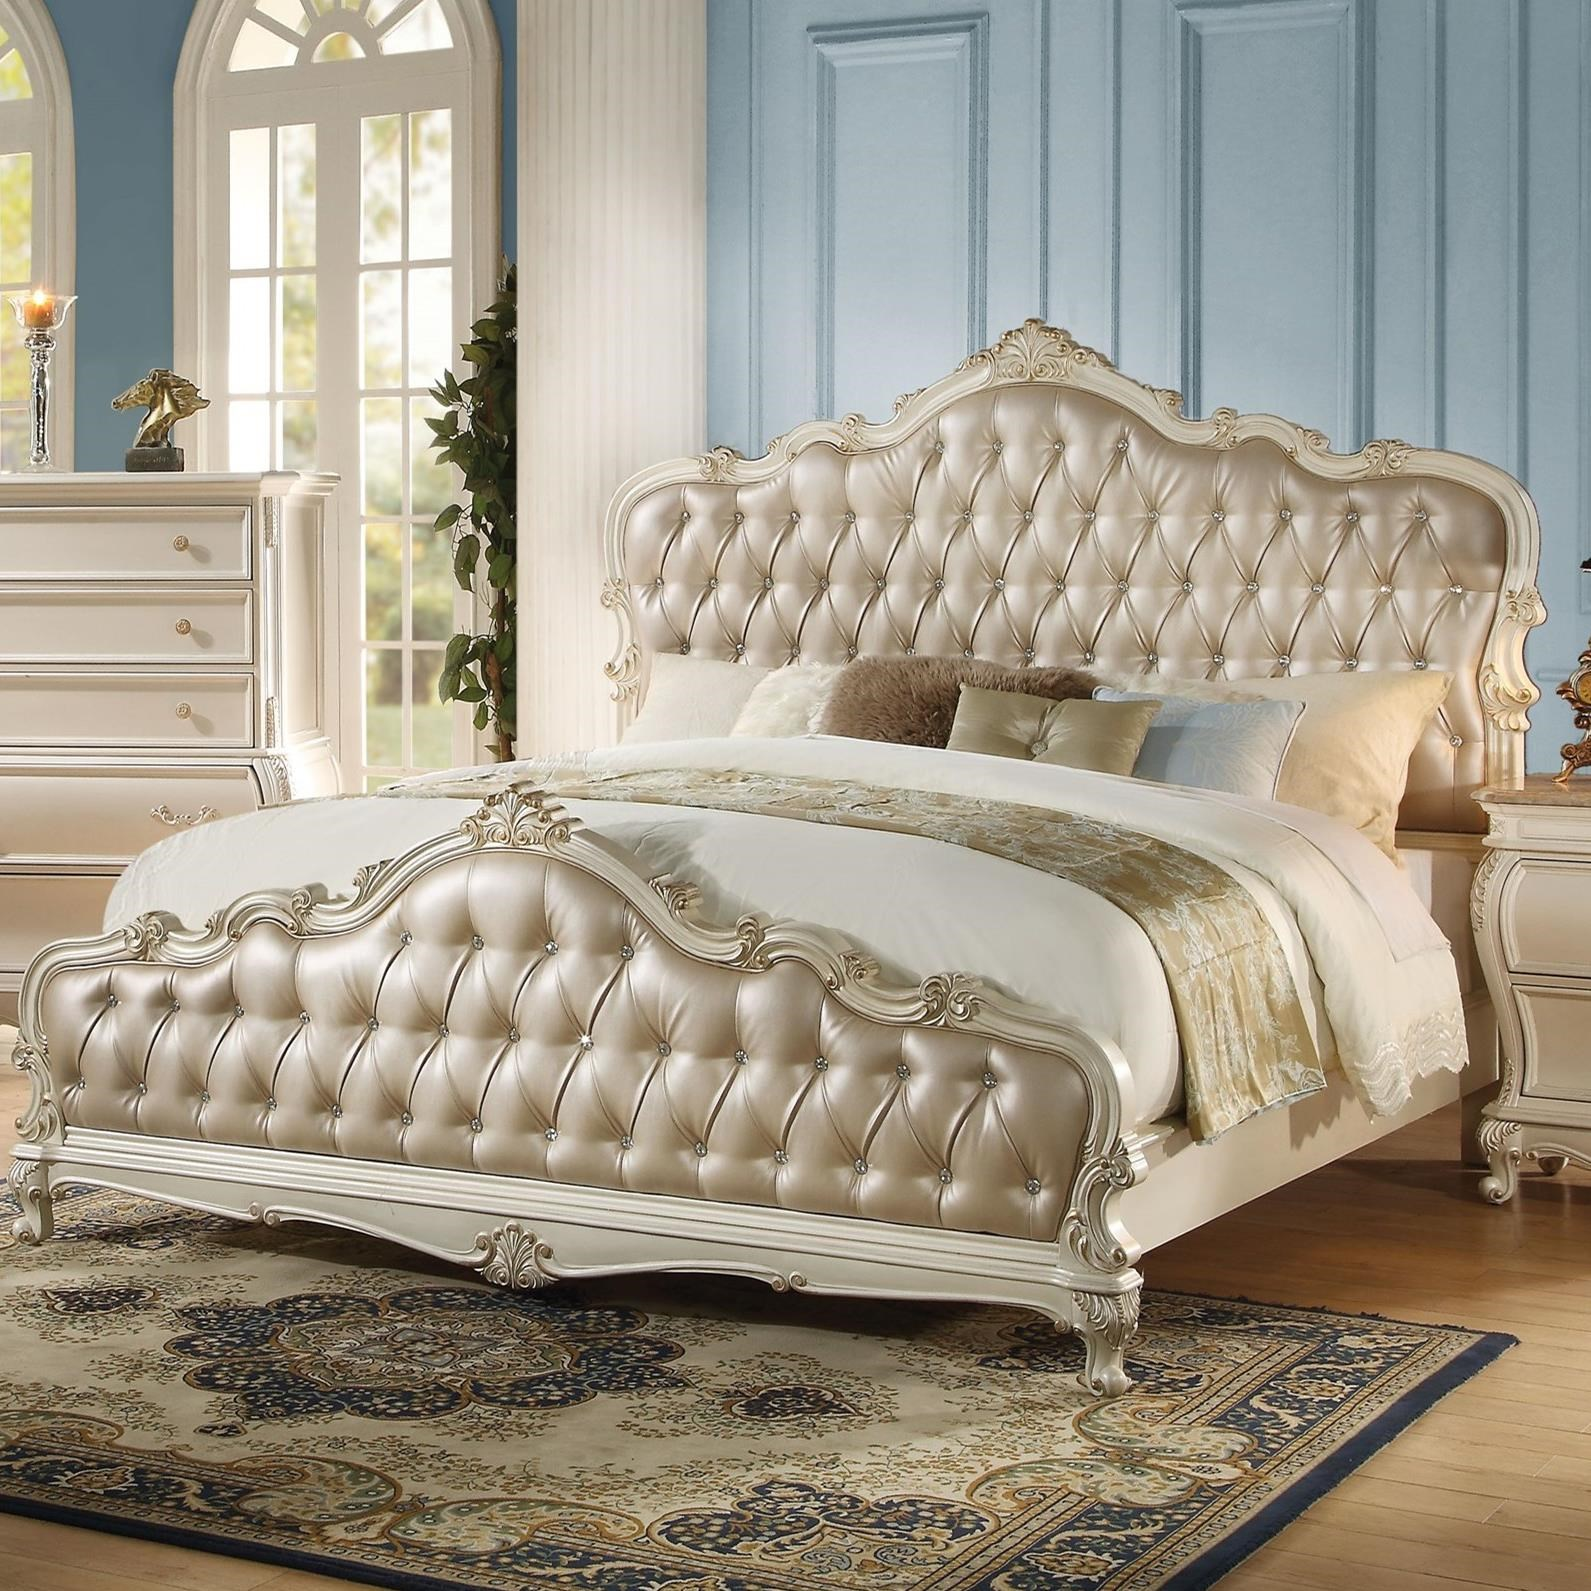 Acme Furniture Chantelle 23537ek Upholstered King Bed With Tufted Headboard Del Sol Furniture Panel Beds